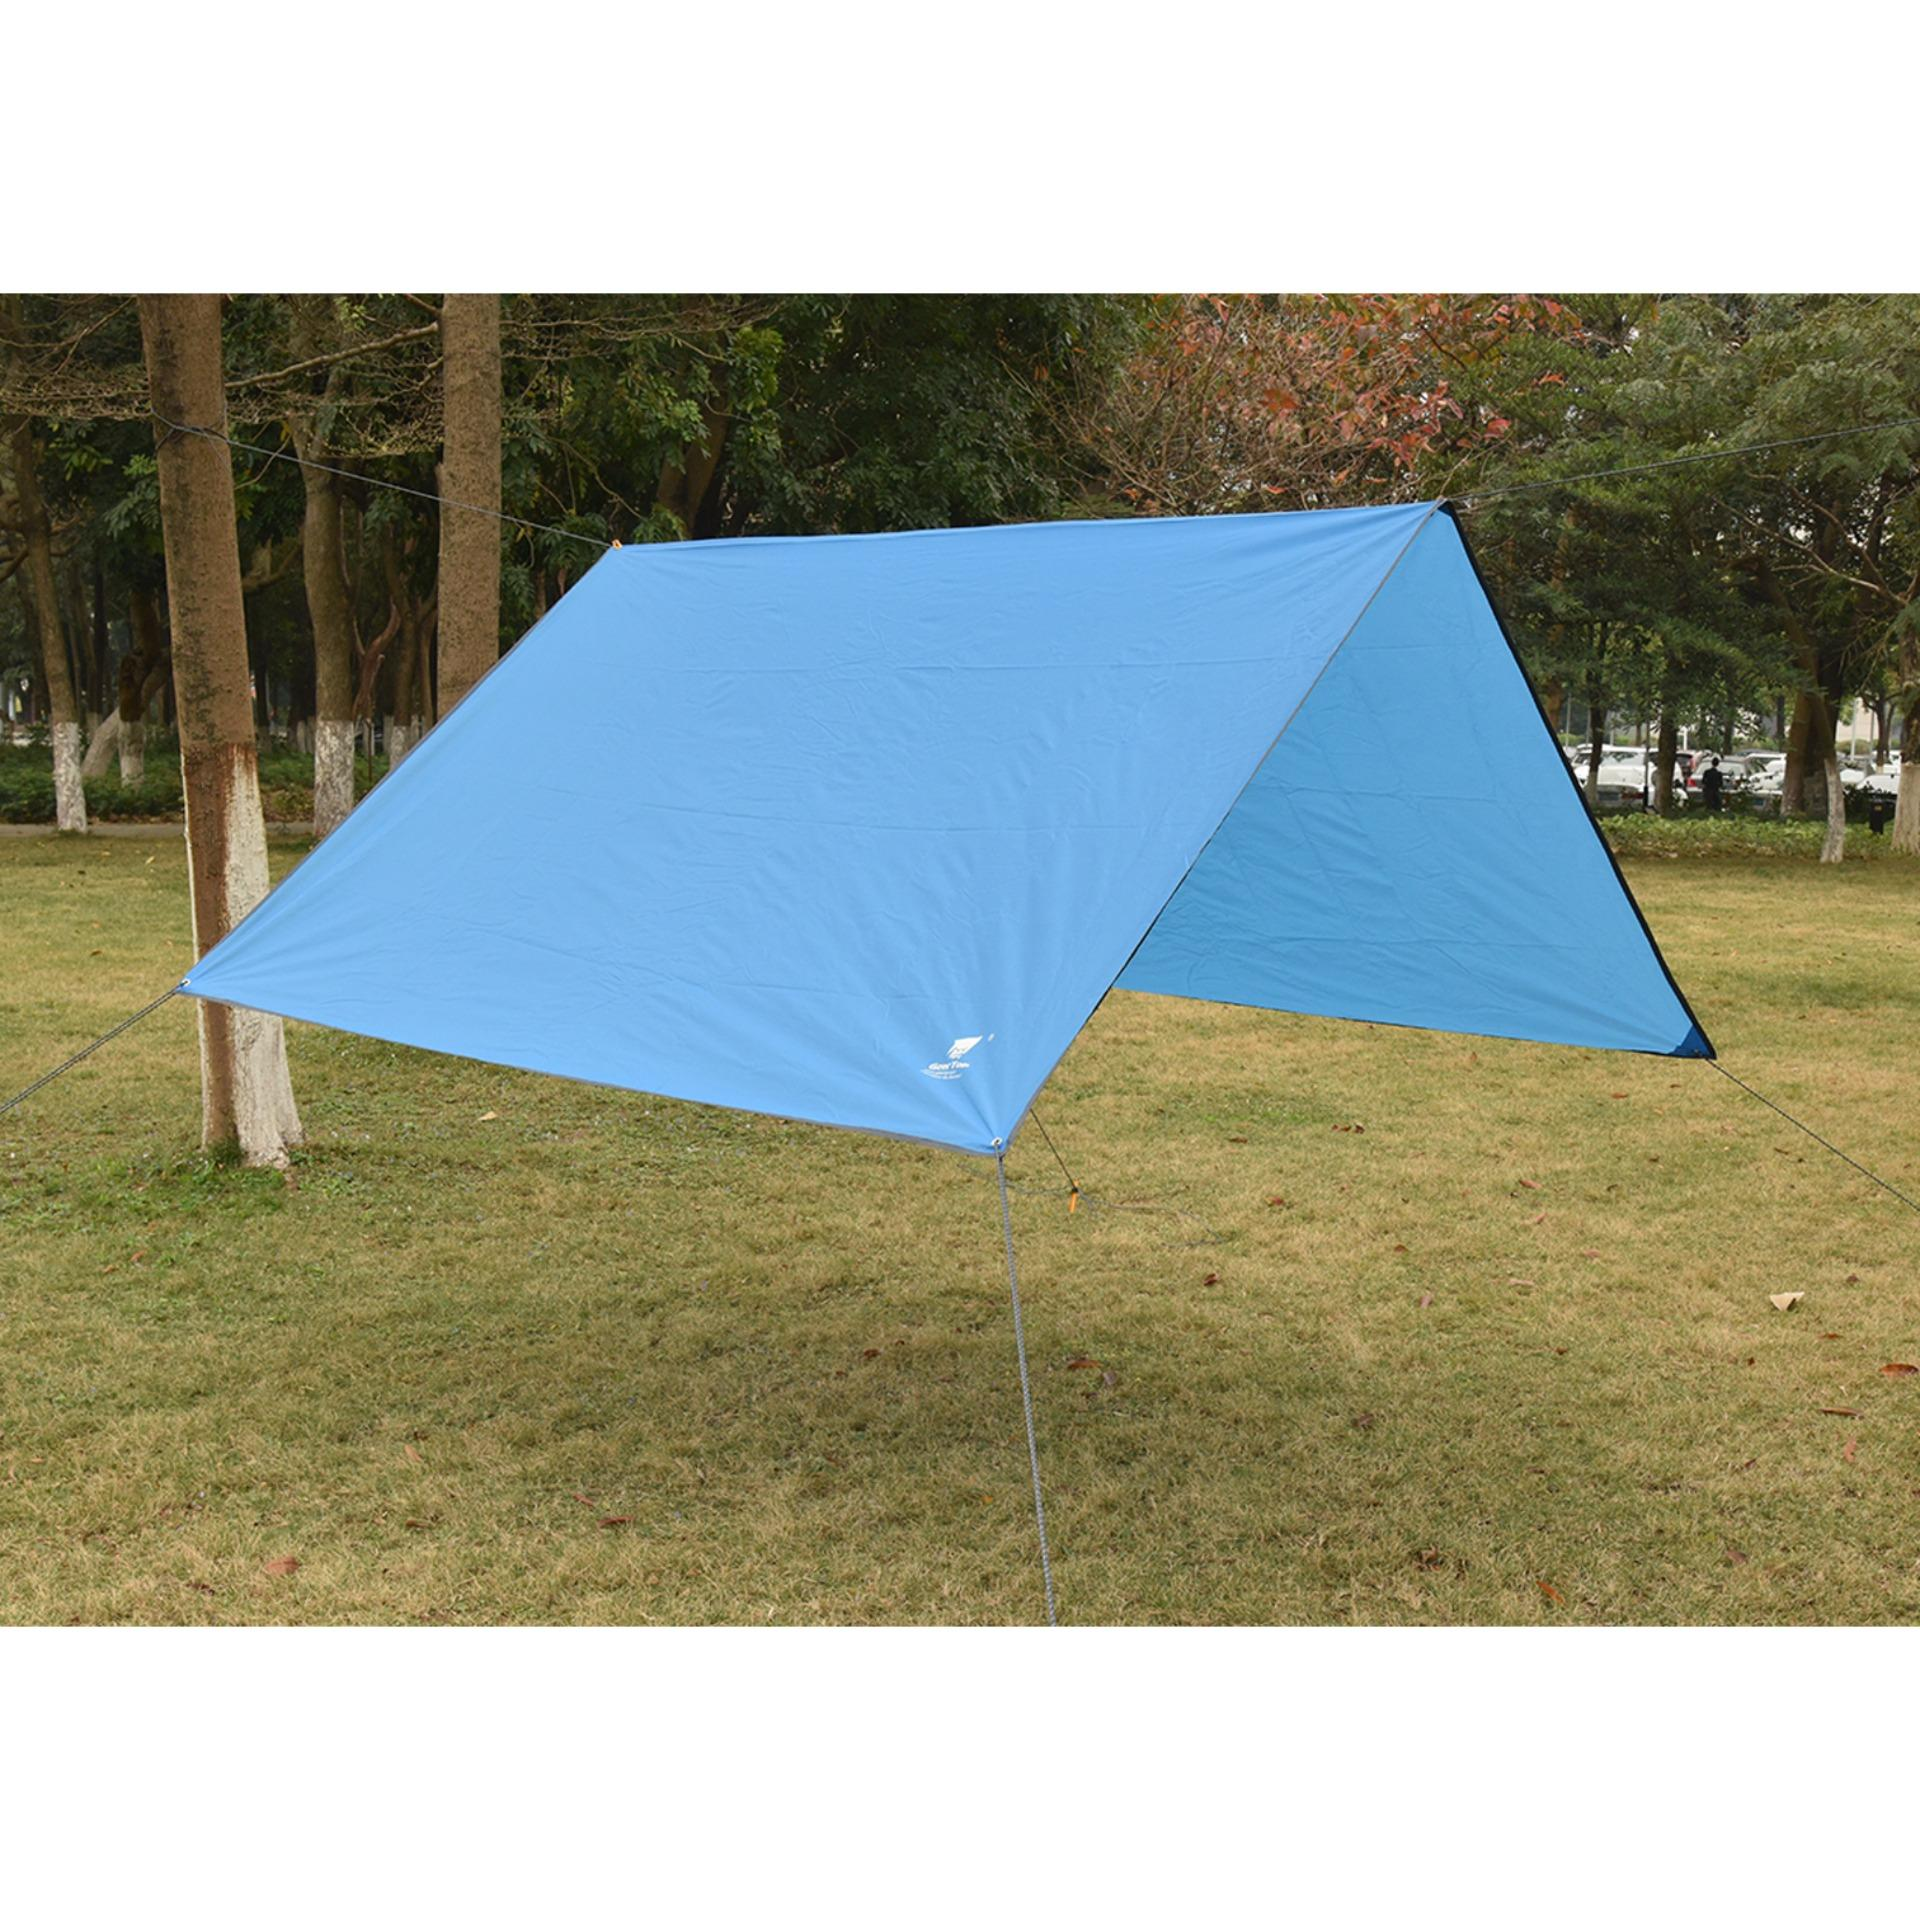 ... Geertop Lightweight C&ing Backpacking Hiking Waterproof Tent TarpGeound Sheet Footprint C&ing Mat Rain Fly Hammock Shelter ...  sc 1 th 225 & Philippines | Geertop Lightweight Camping Backpacking Hiking ...